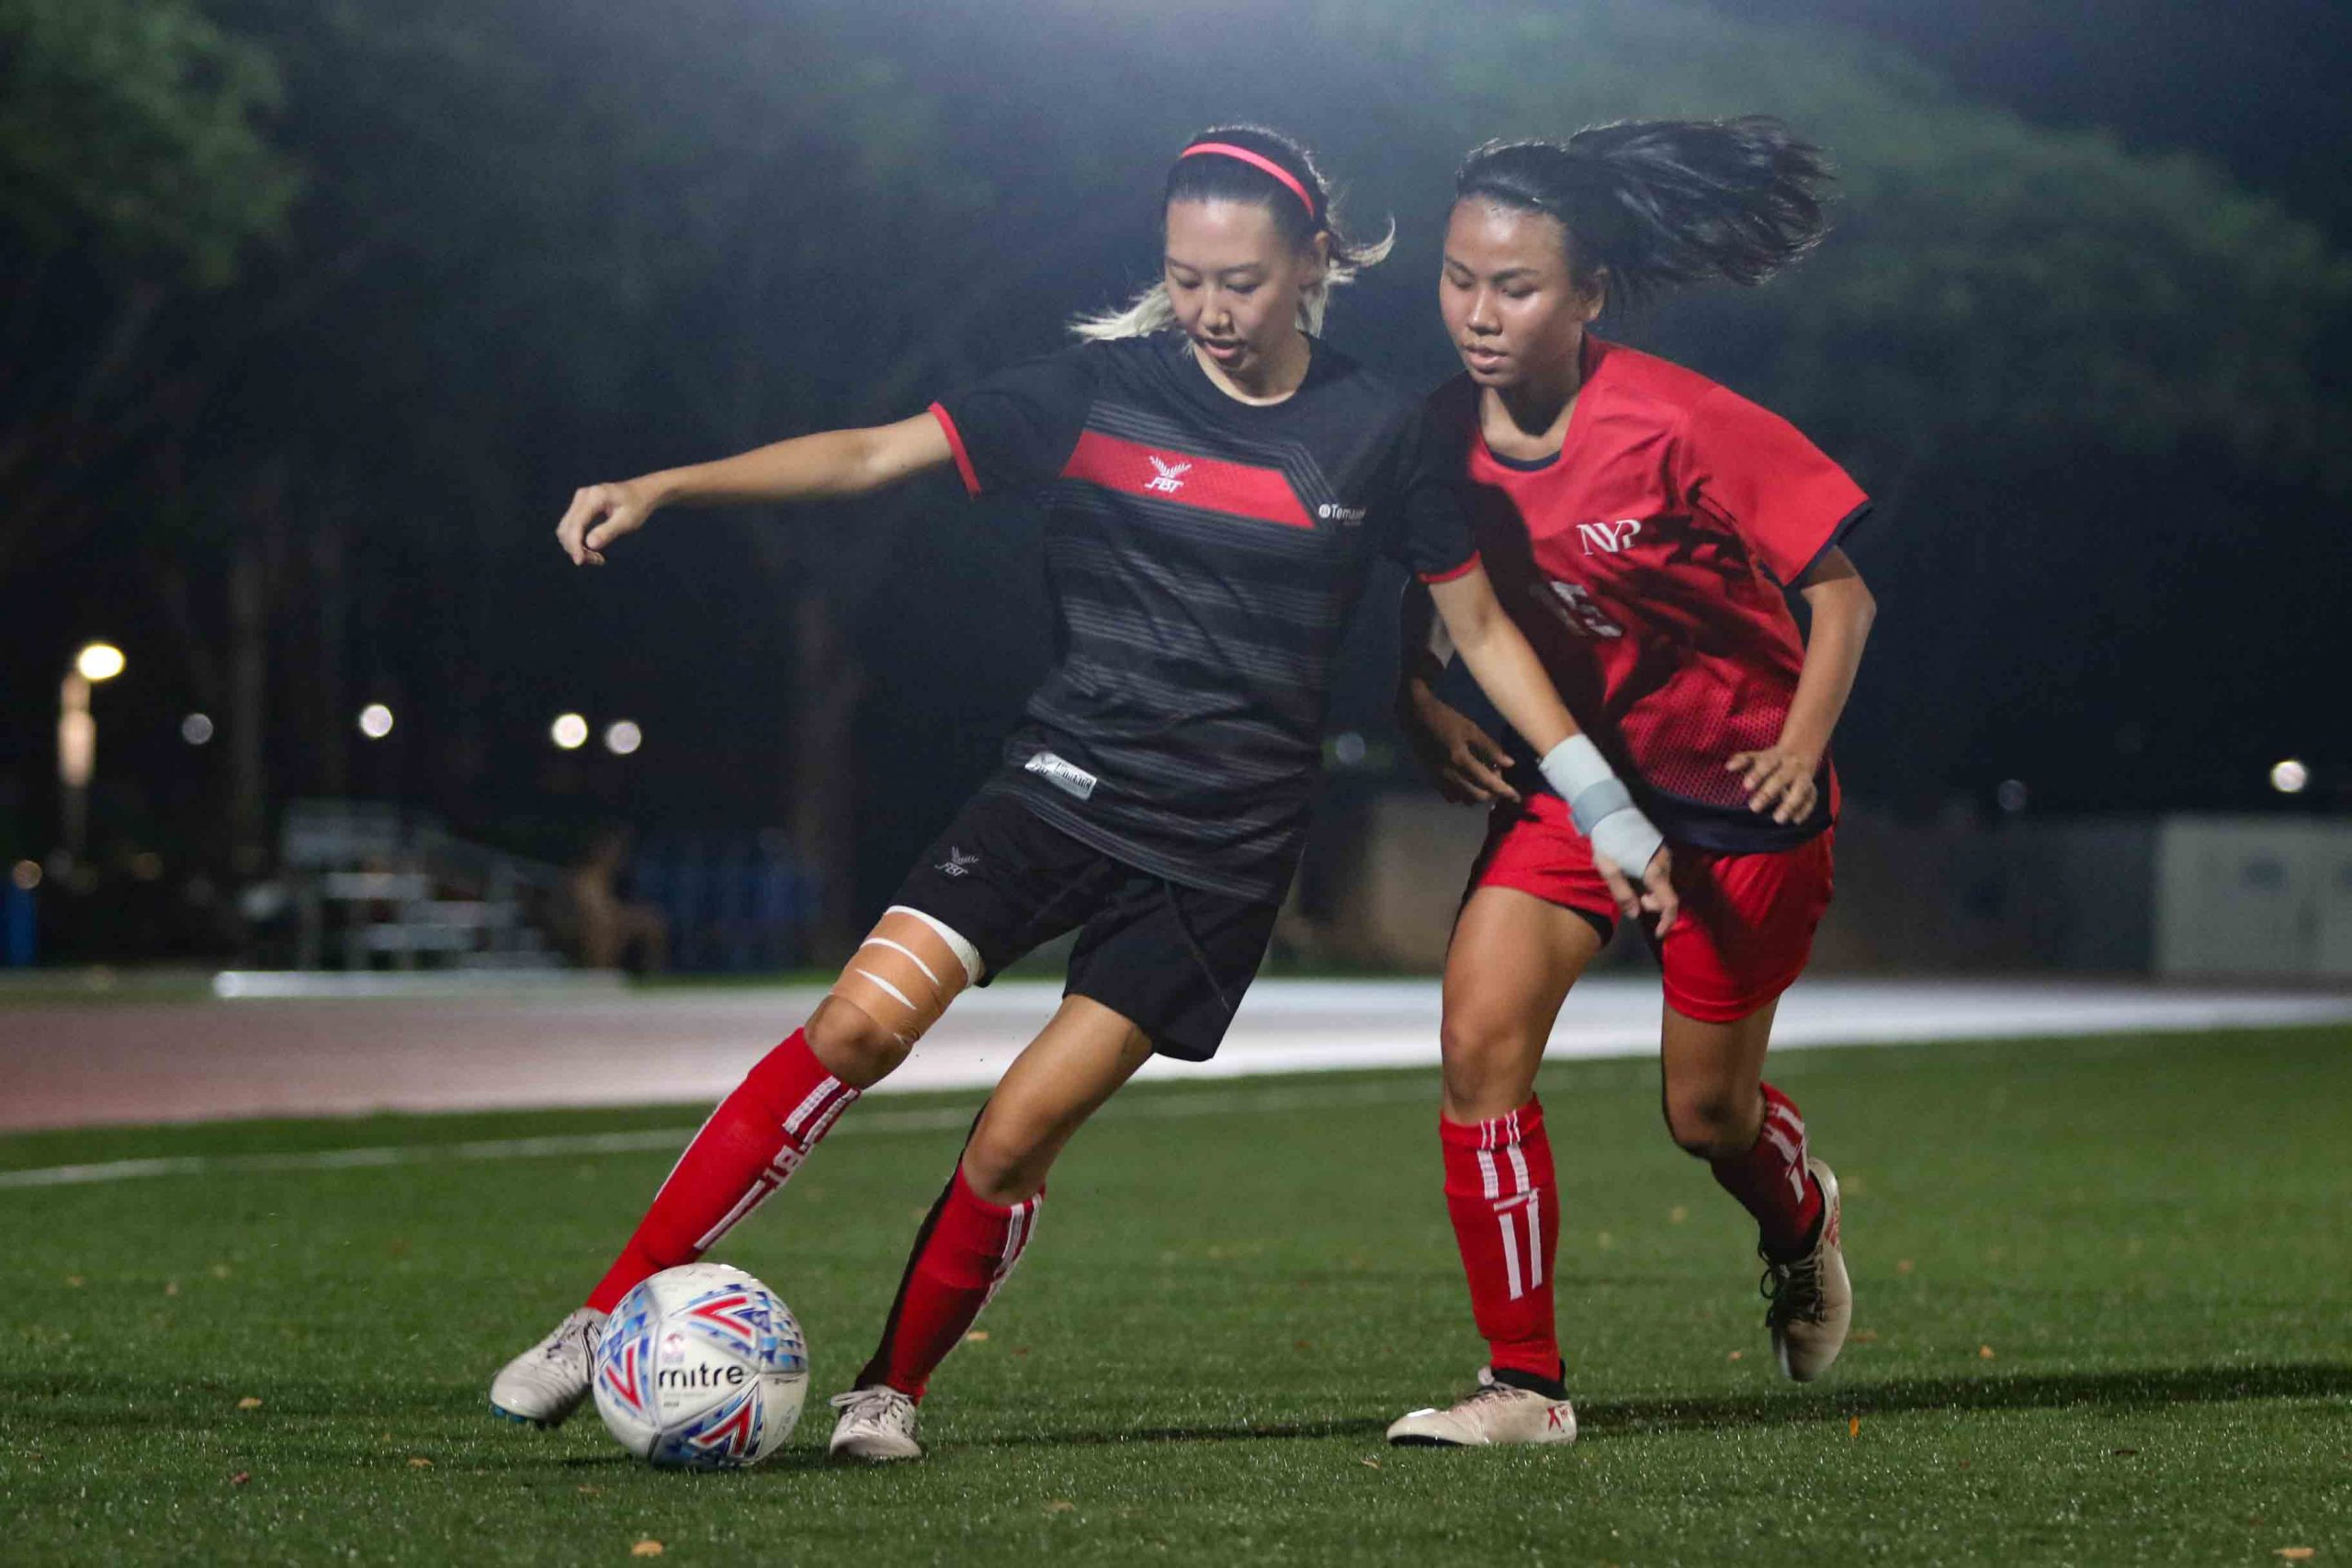 TP and NYP battle out 1-1 draw in their final POLITE fixture. (Photo 8 © Clara Lau/Red Sports)